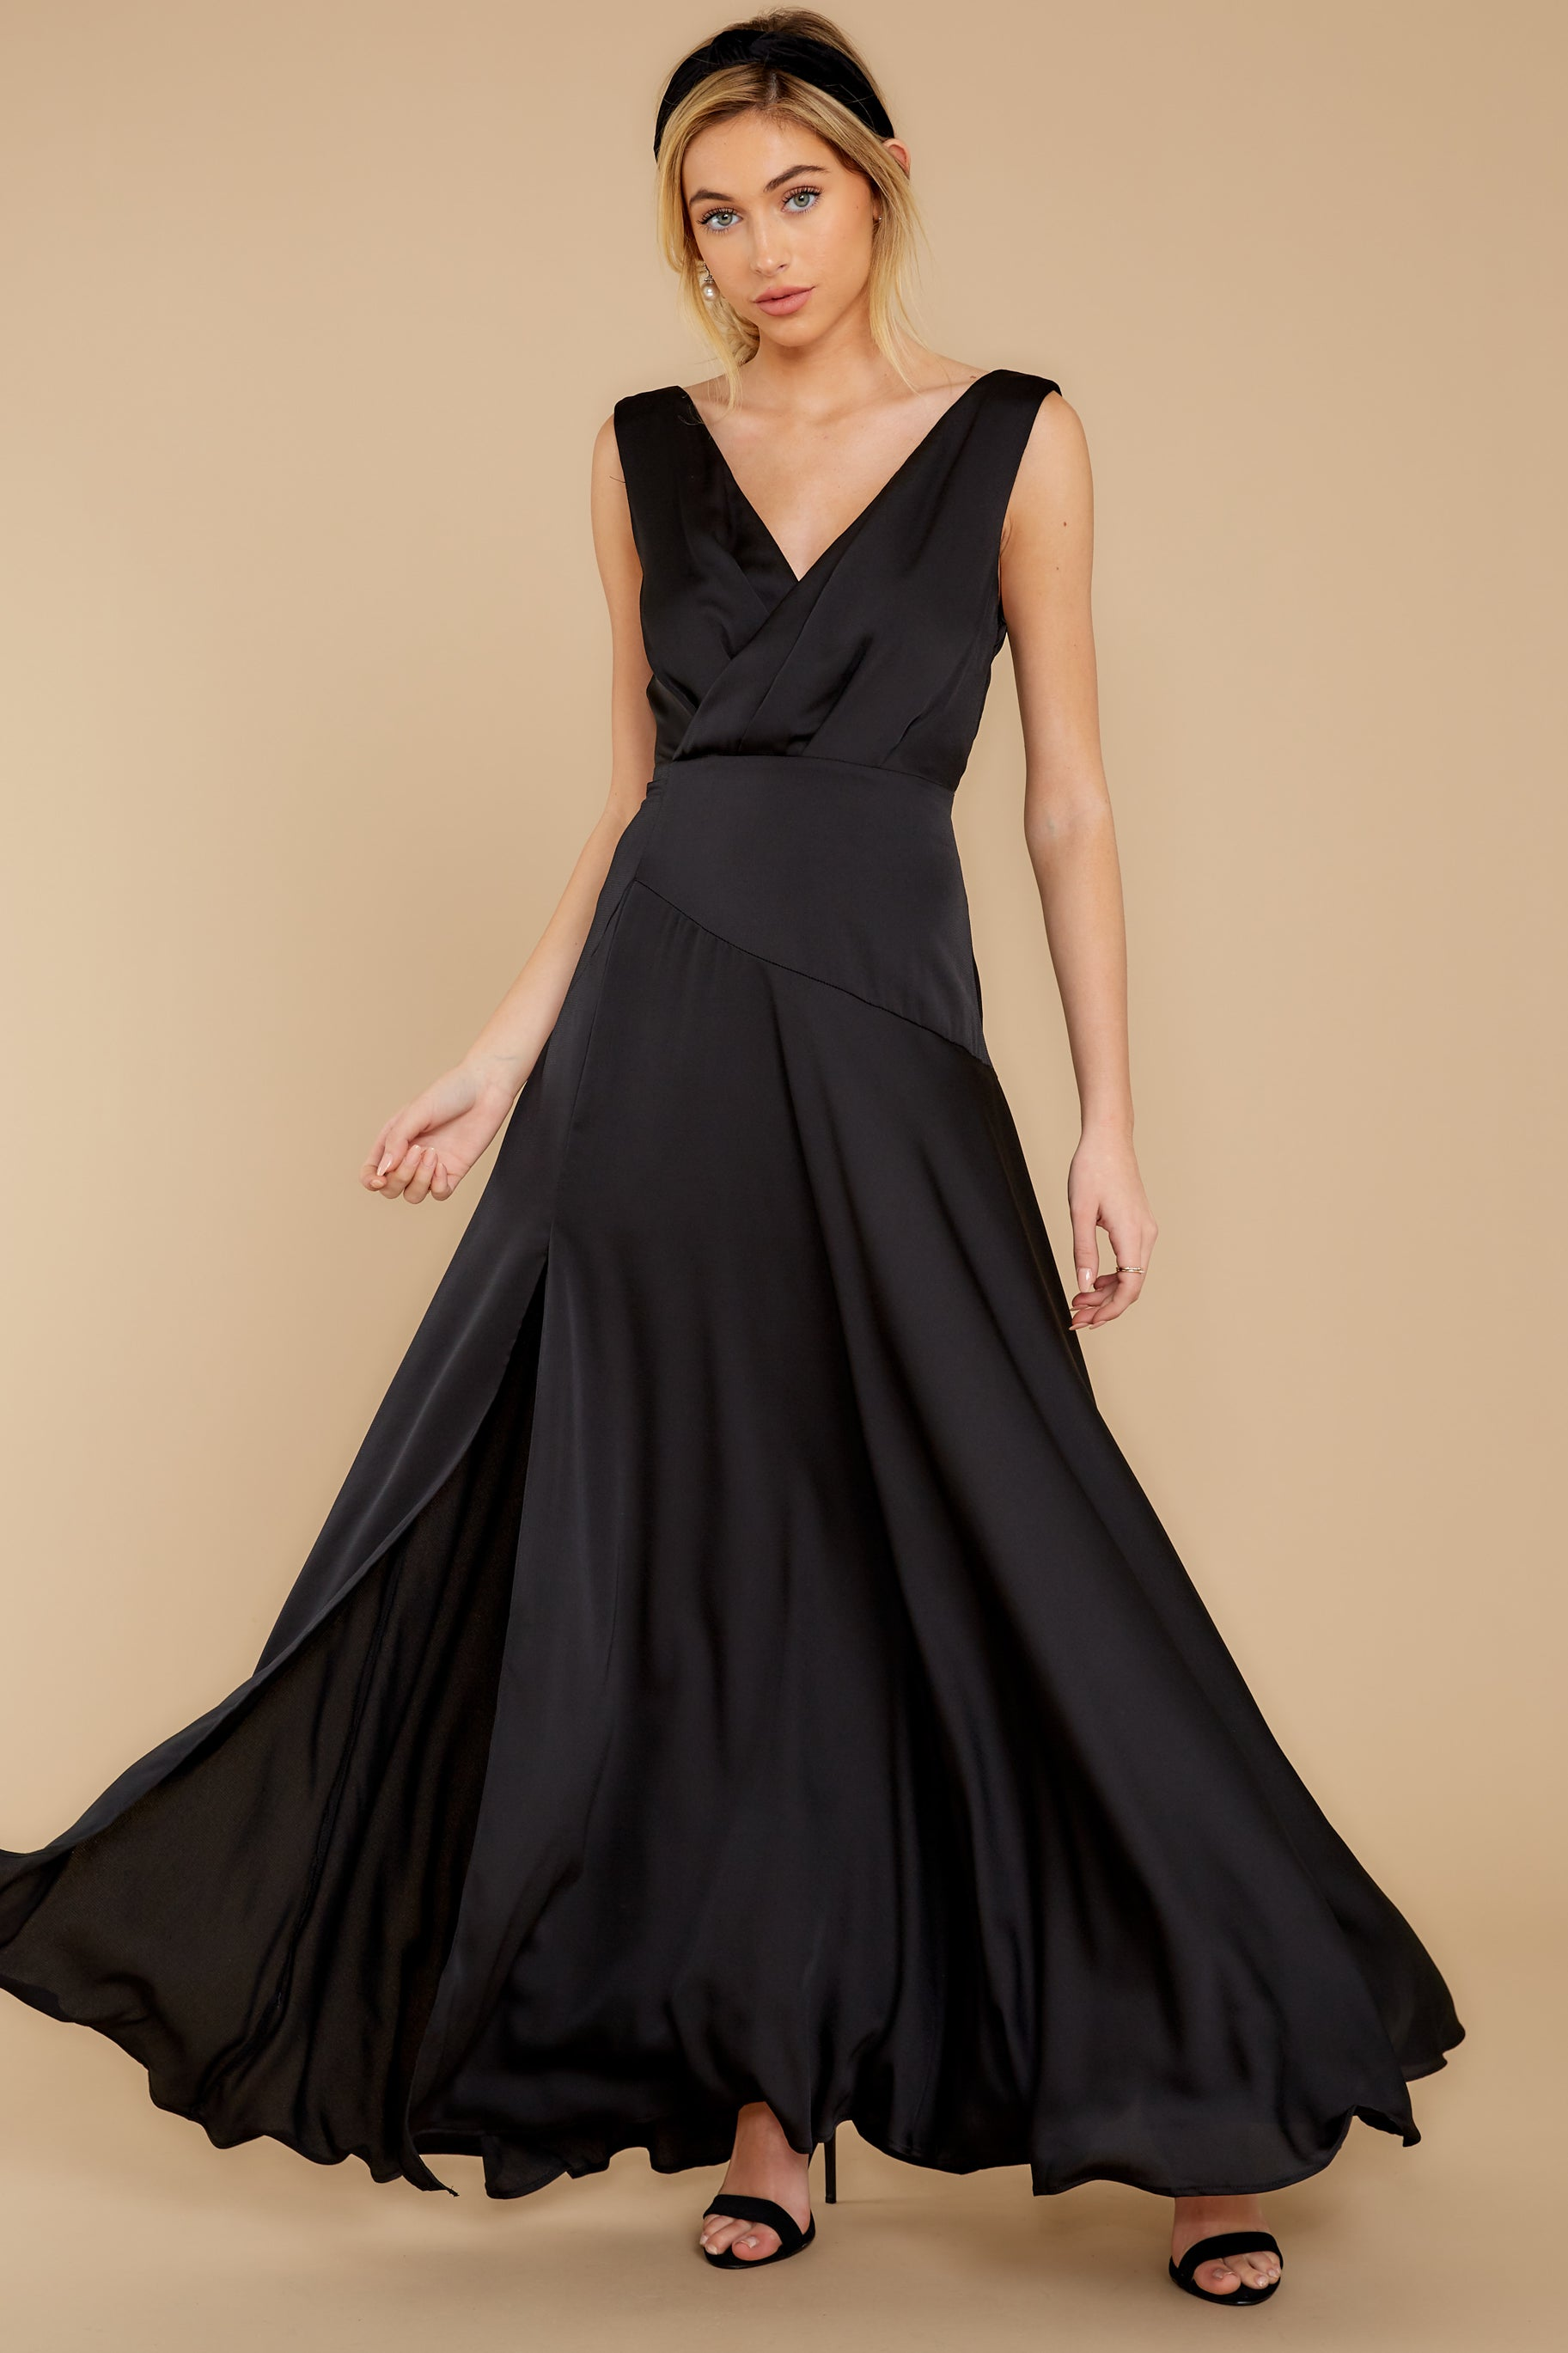 Vintage Evening Dresses and Formal Evening Gowns Sweeping Entrance Black Maxi Dress $34.00 AT vintagedancer.com